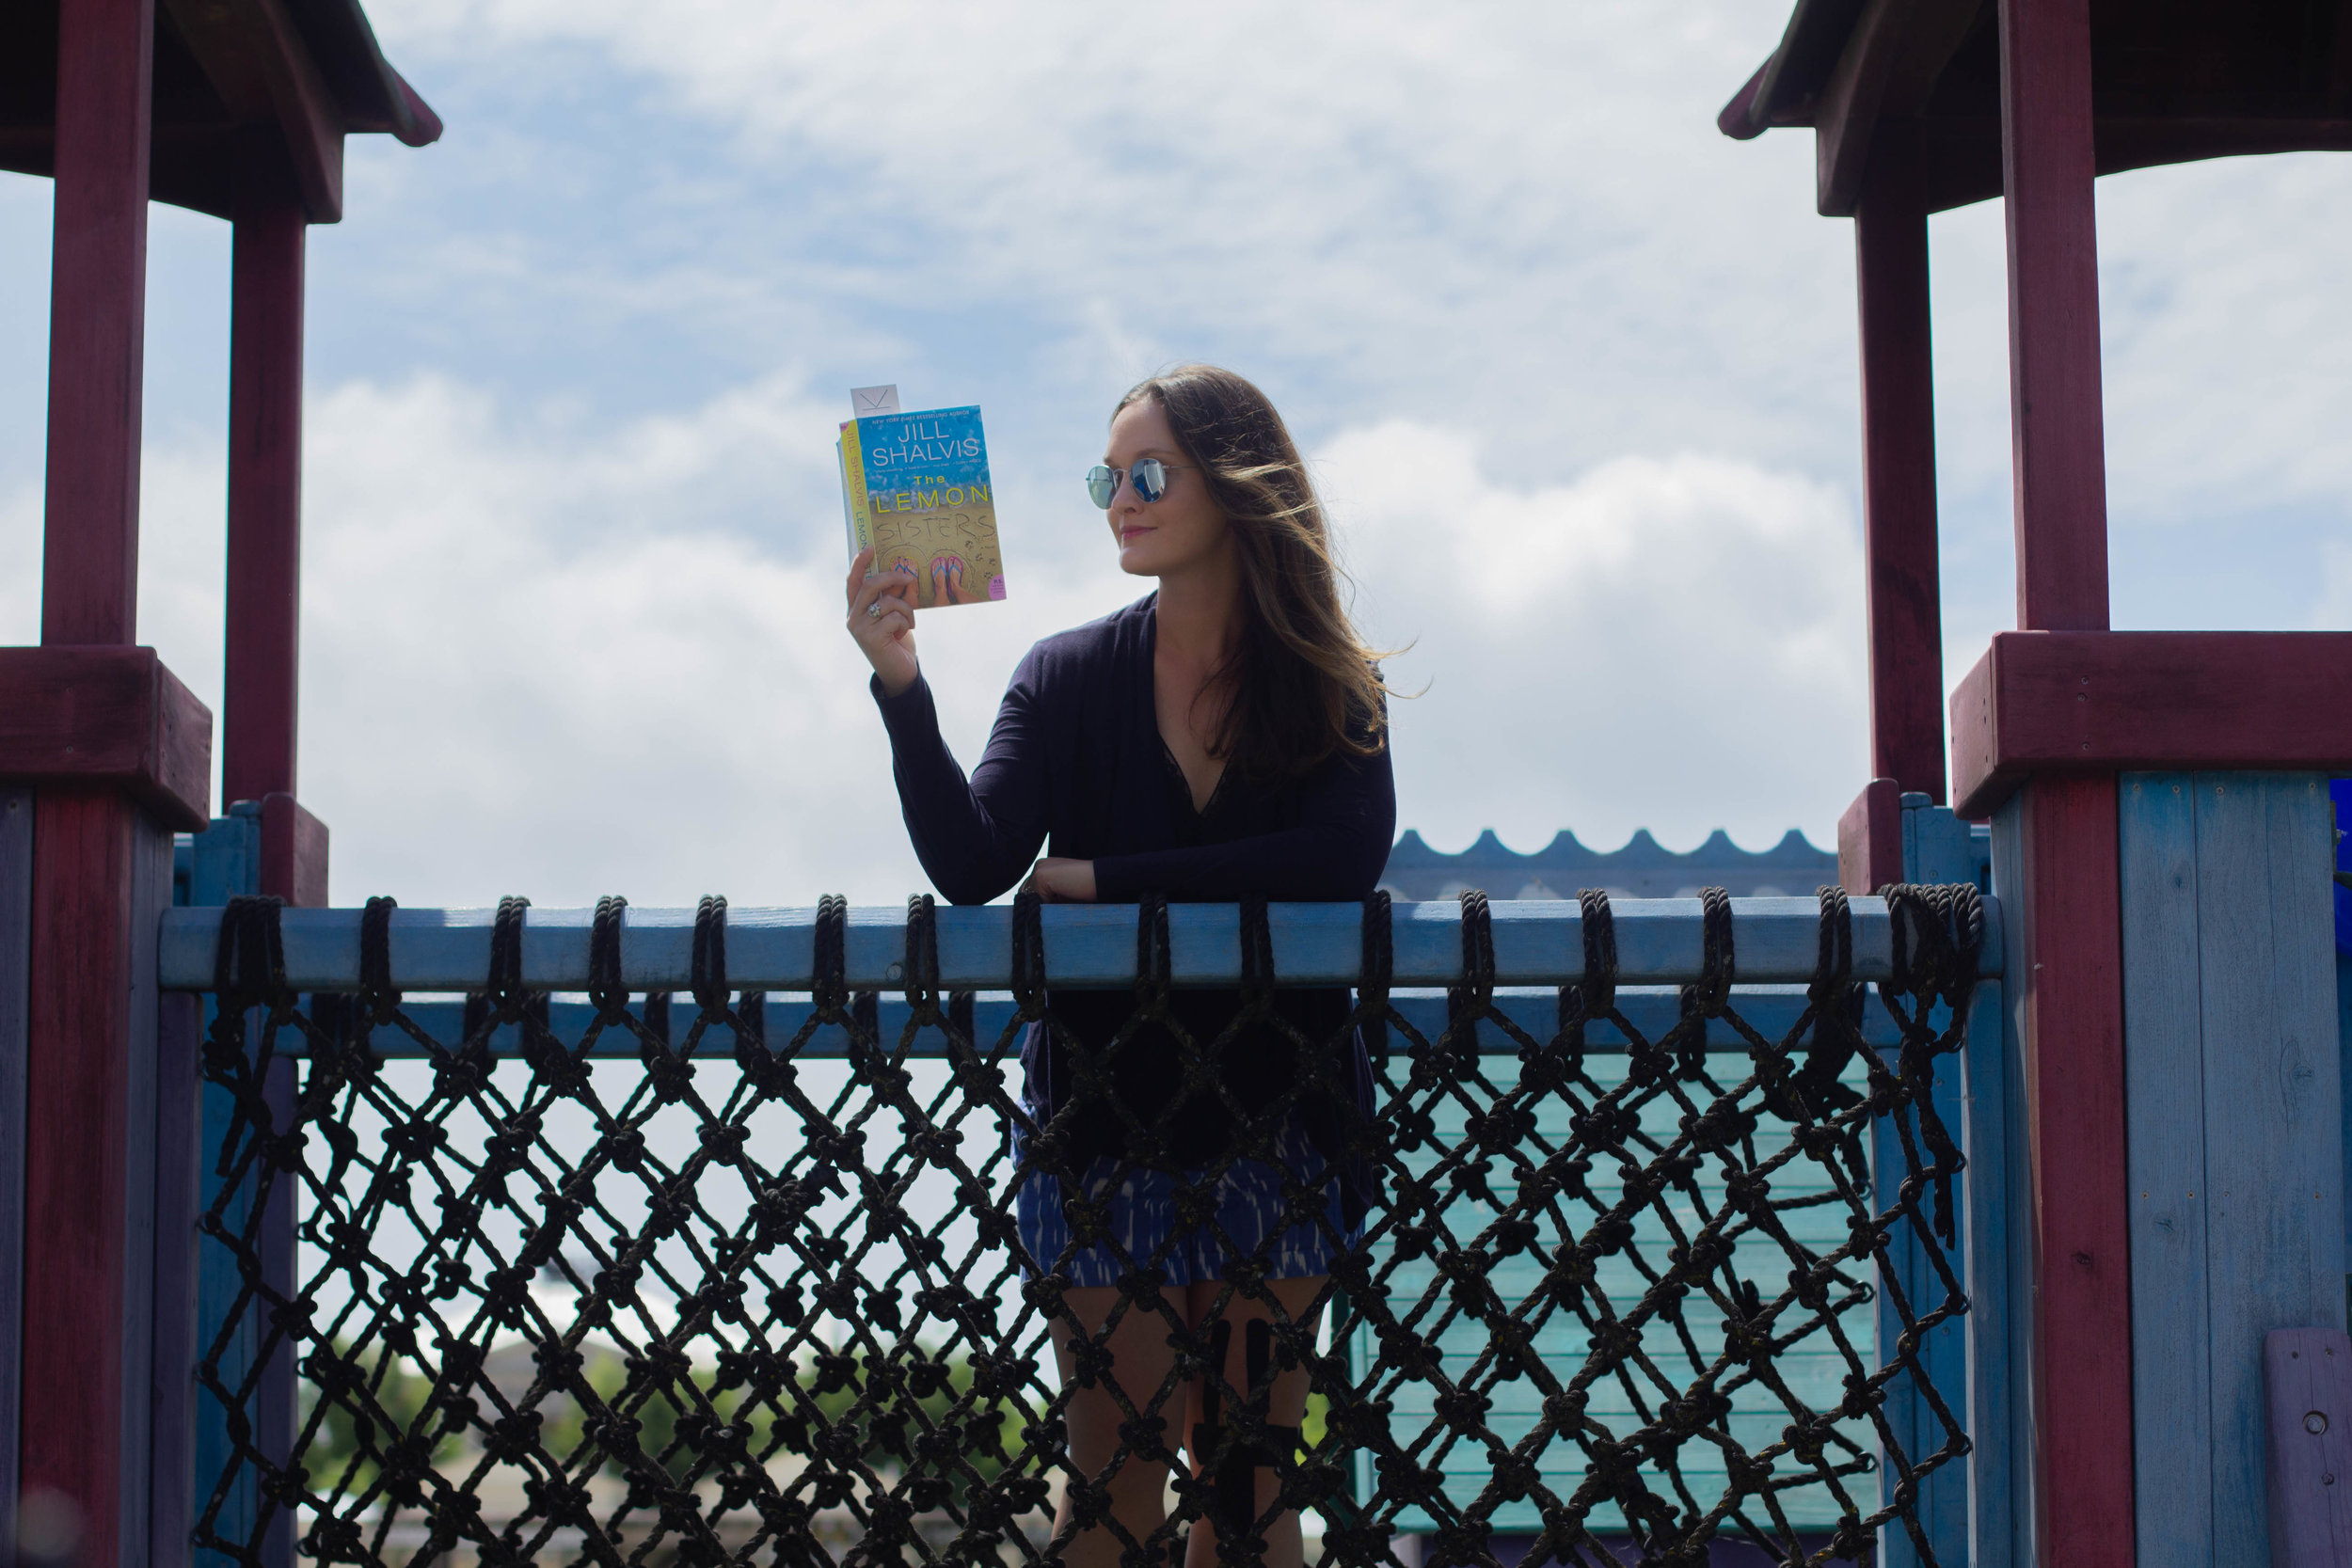 Reading The Lemon Sisters by Jill Shalvis at a playground in New Town at St. Charles, MO